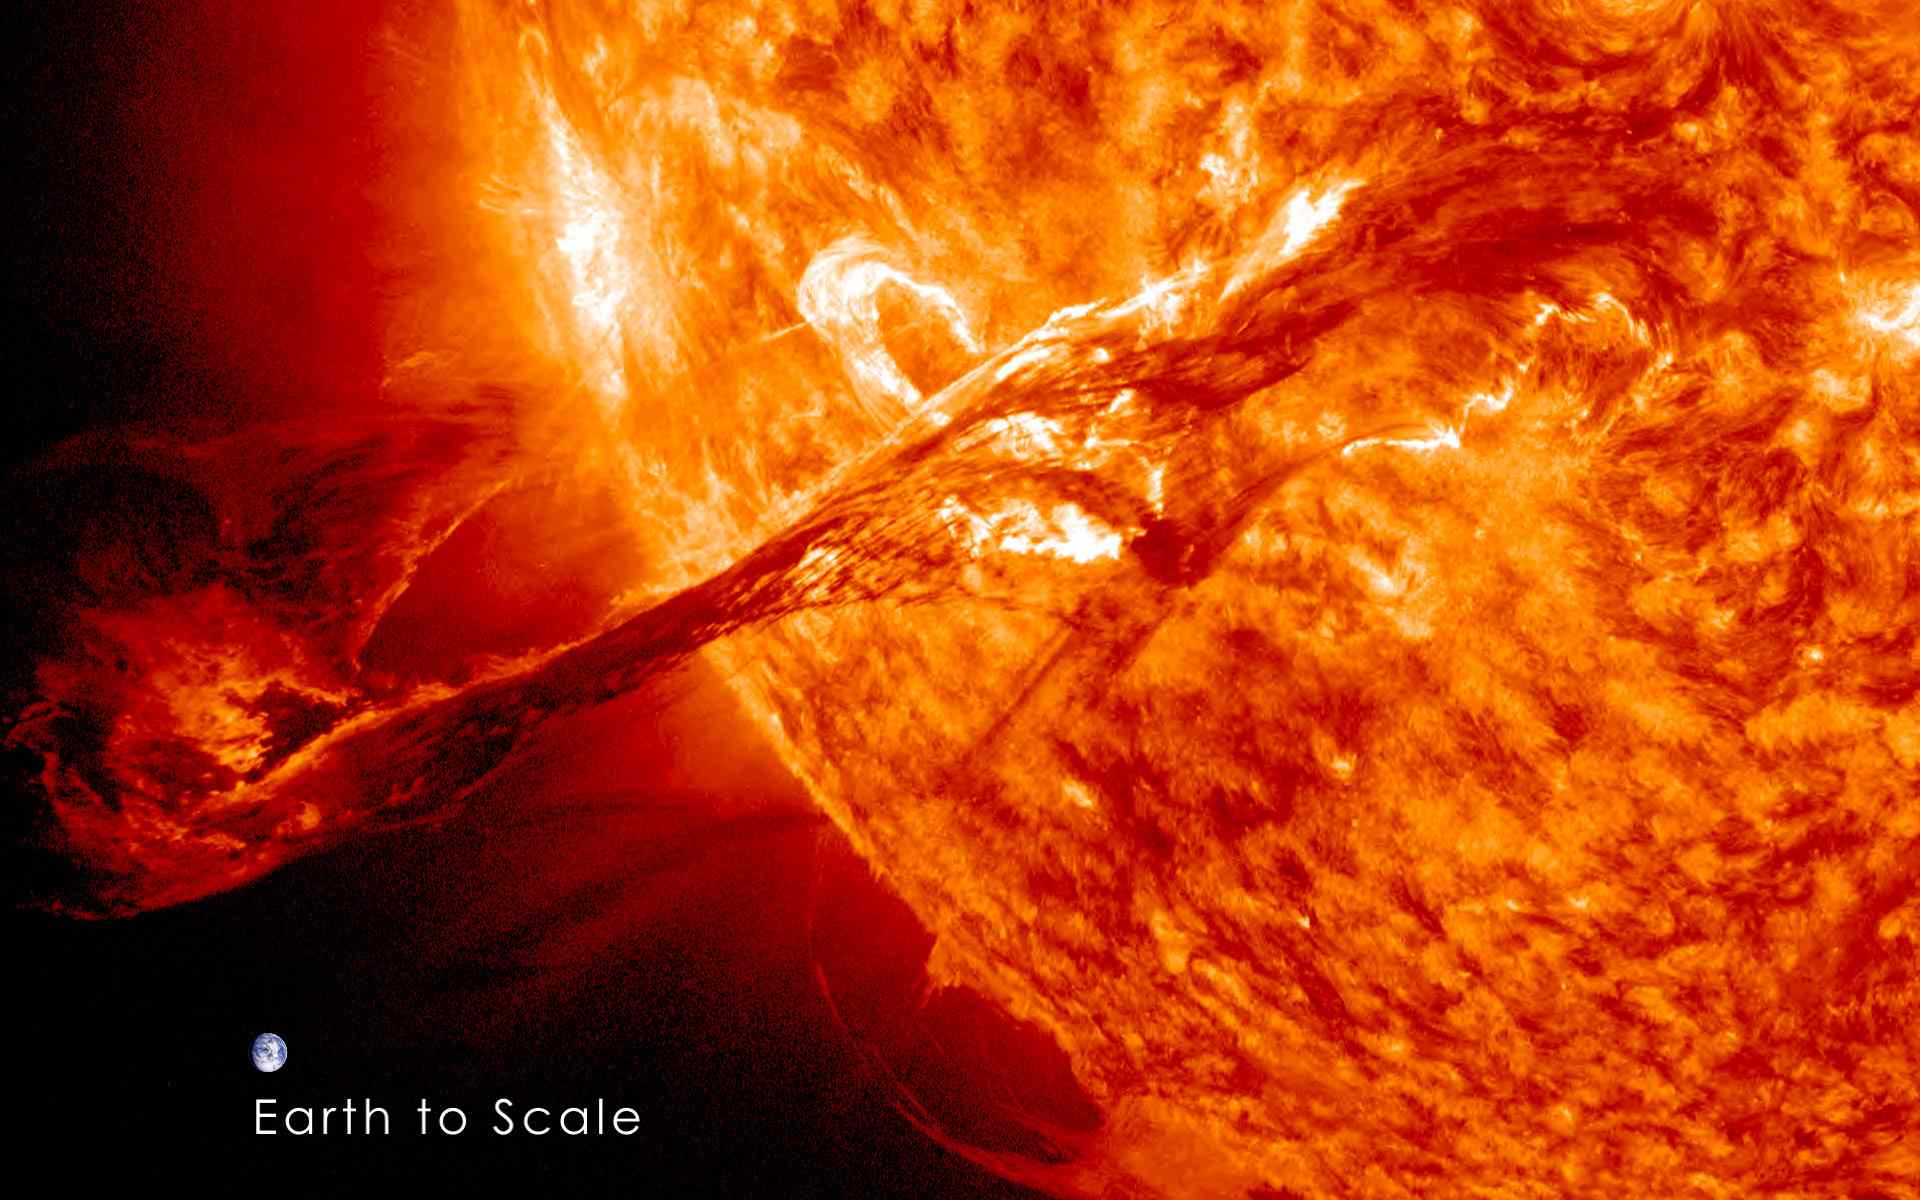 Closeup of a coronal mass ejection on the Sun.